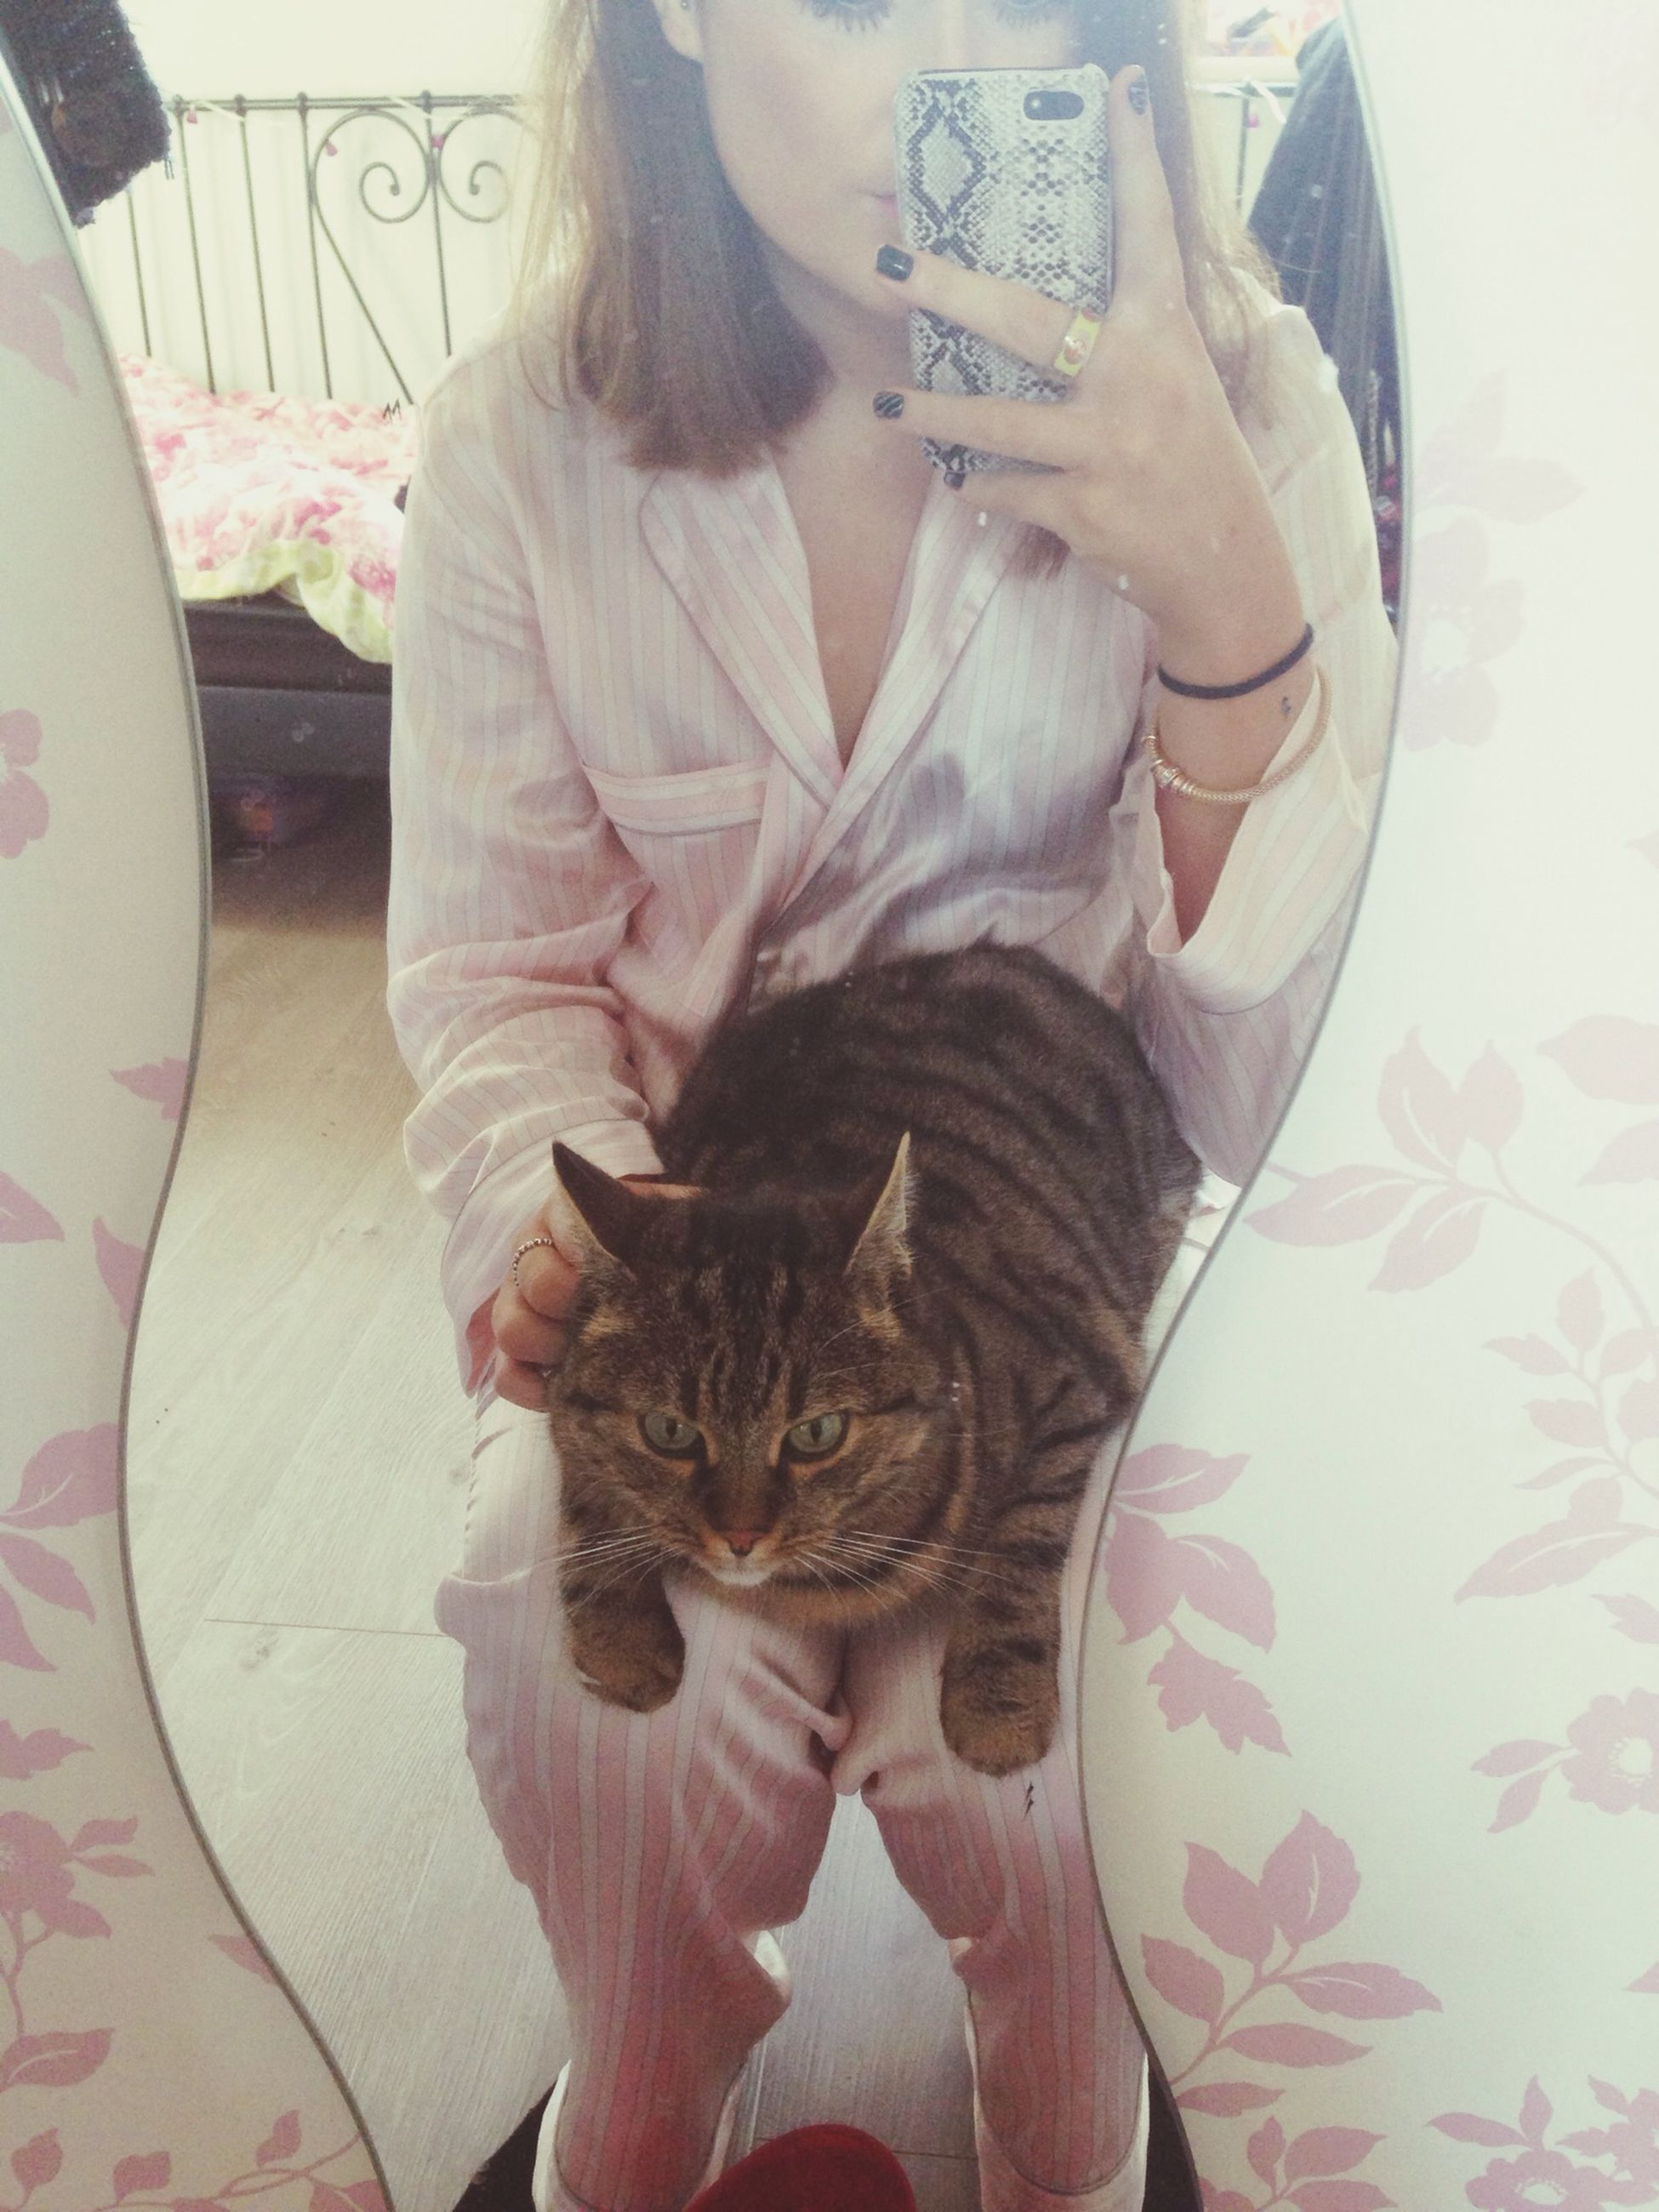 indoors, high angle view, relaxation, pets, domestic cat, lifestyles, home interior, domestic animals, bed, cat, animal themes, sitting, leisure activity, one animal, person, casual clothing, lying down, table